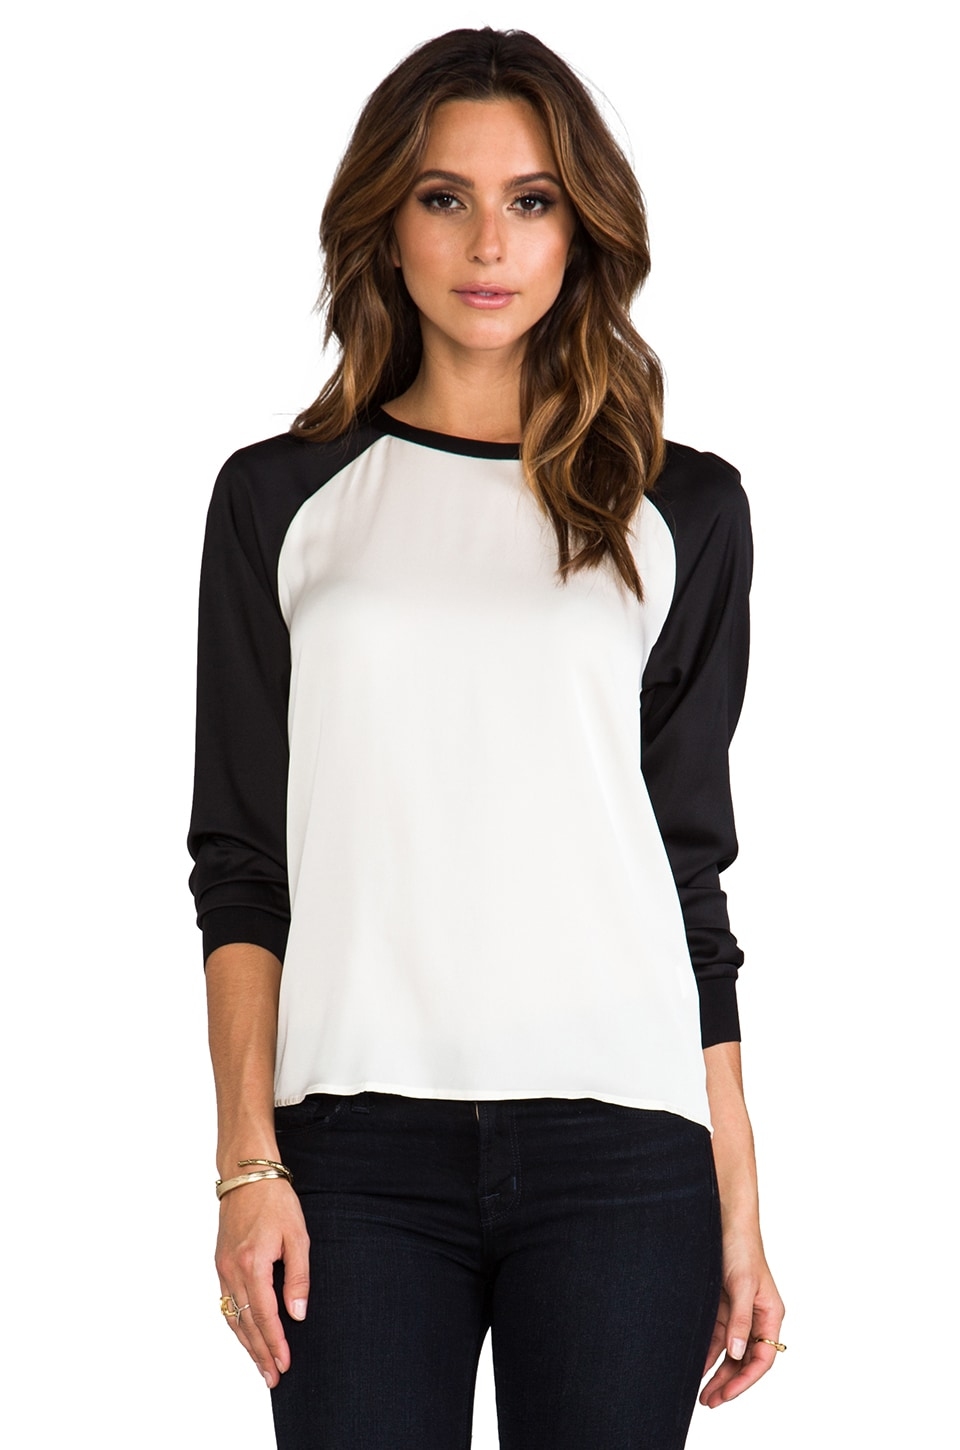 Trina Turk Kelsey Top in Black/Ivory